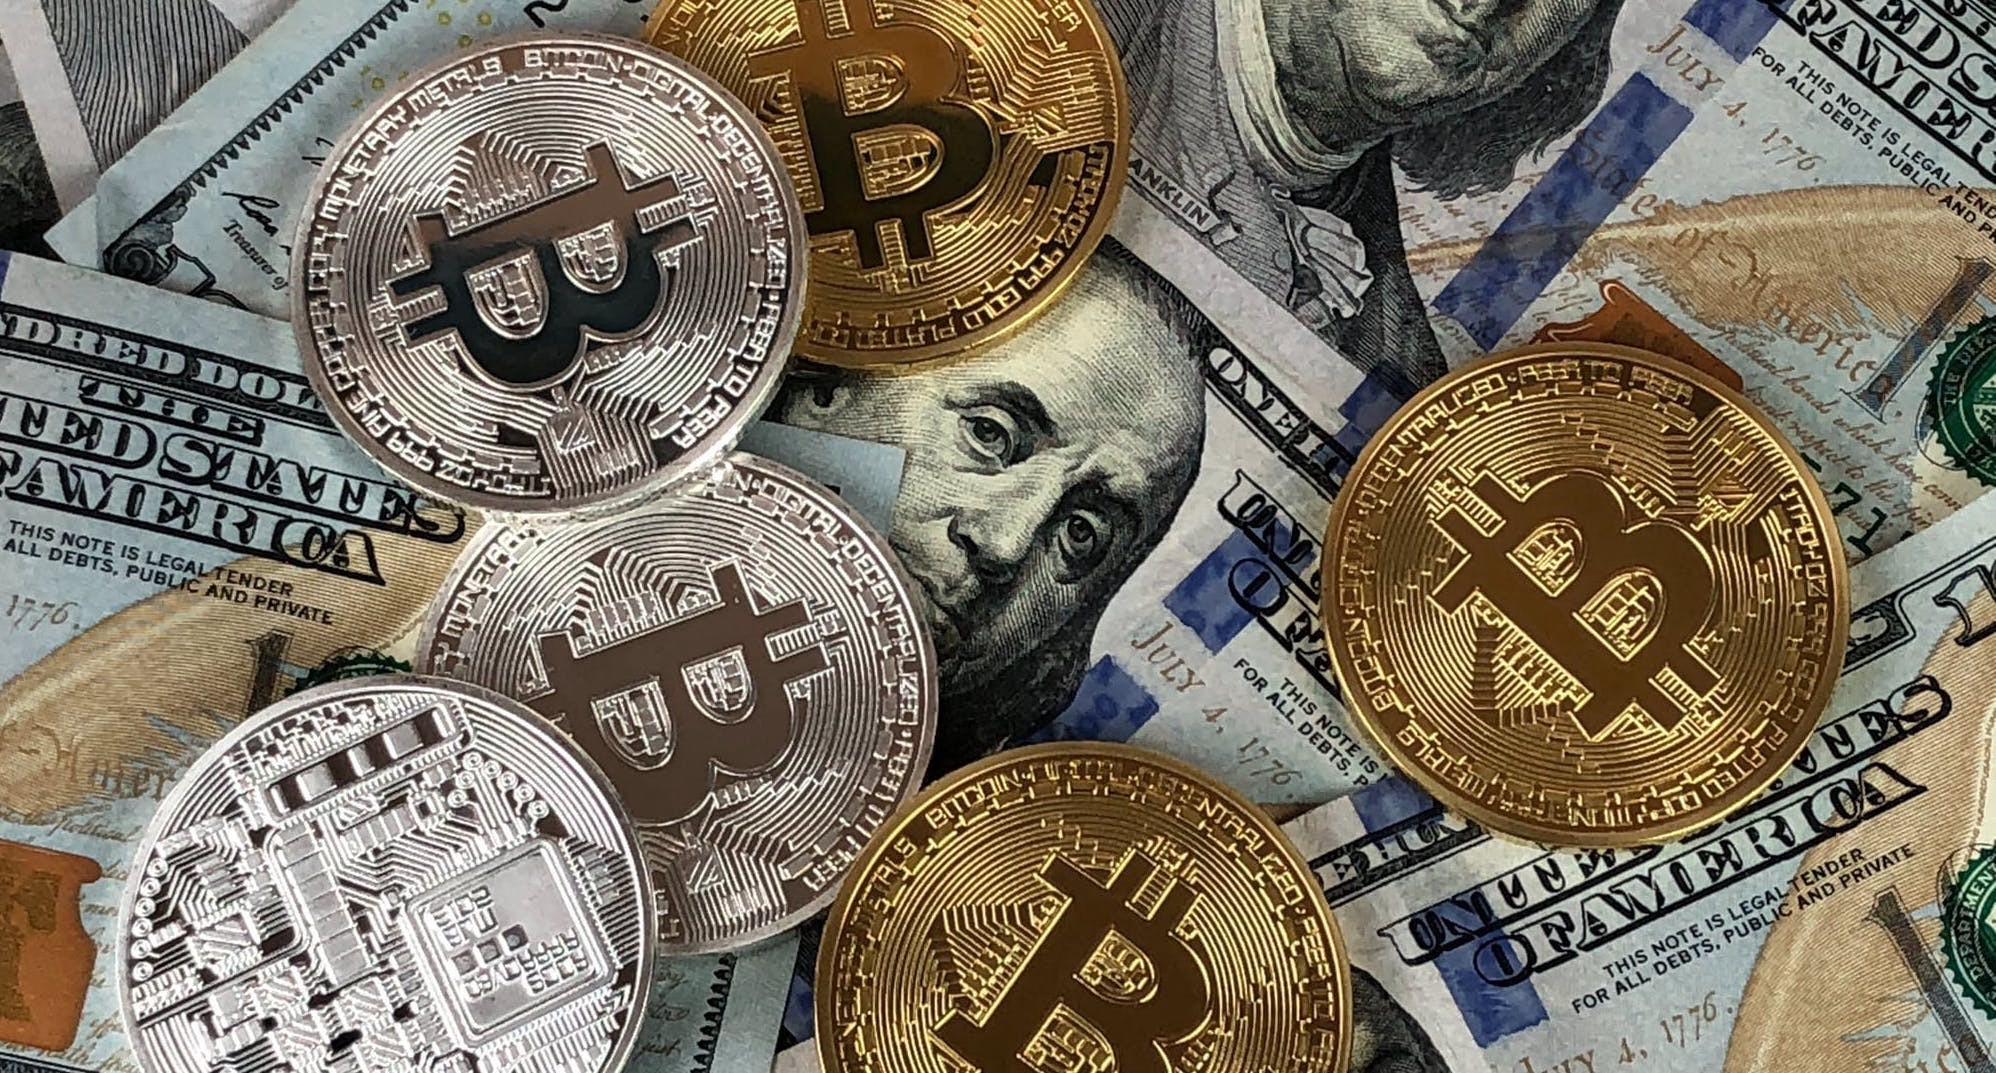 Should Nonprofits Accept Cryptocurrencies, like Bitcoin, as Donations?